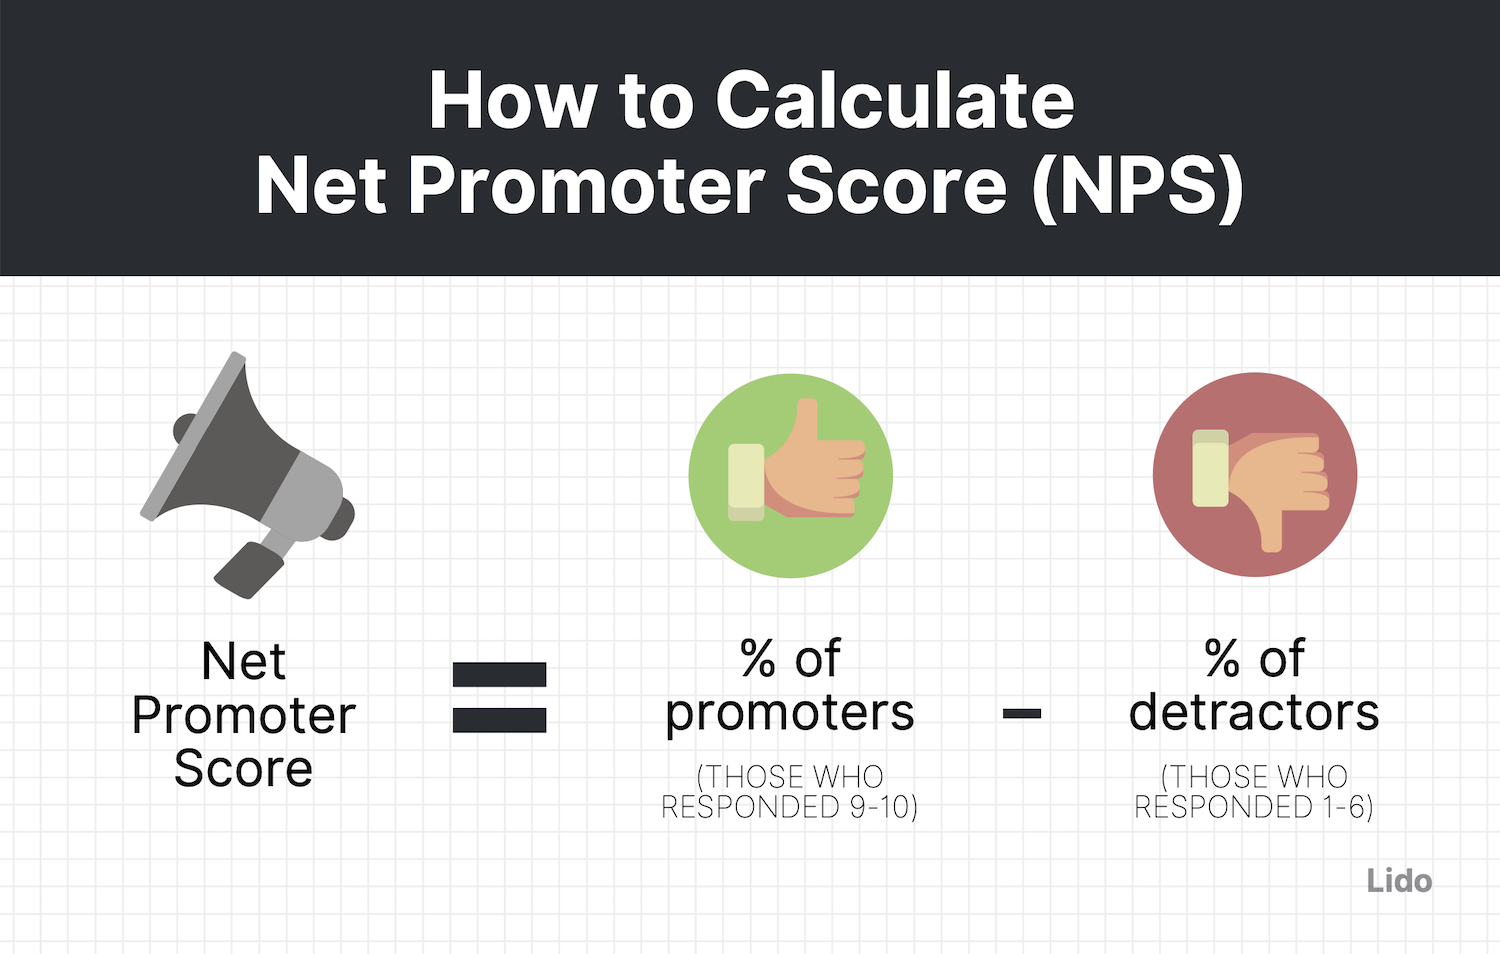 Includes NPS equation, which is % of promotors (those who responded 9-10) minus % of detractors (those who responded 1-6)